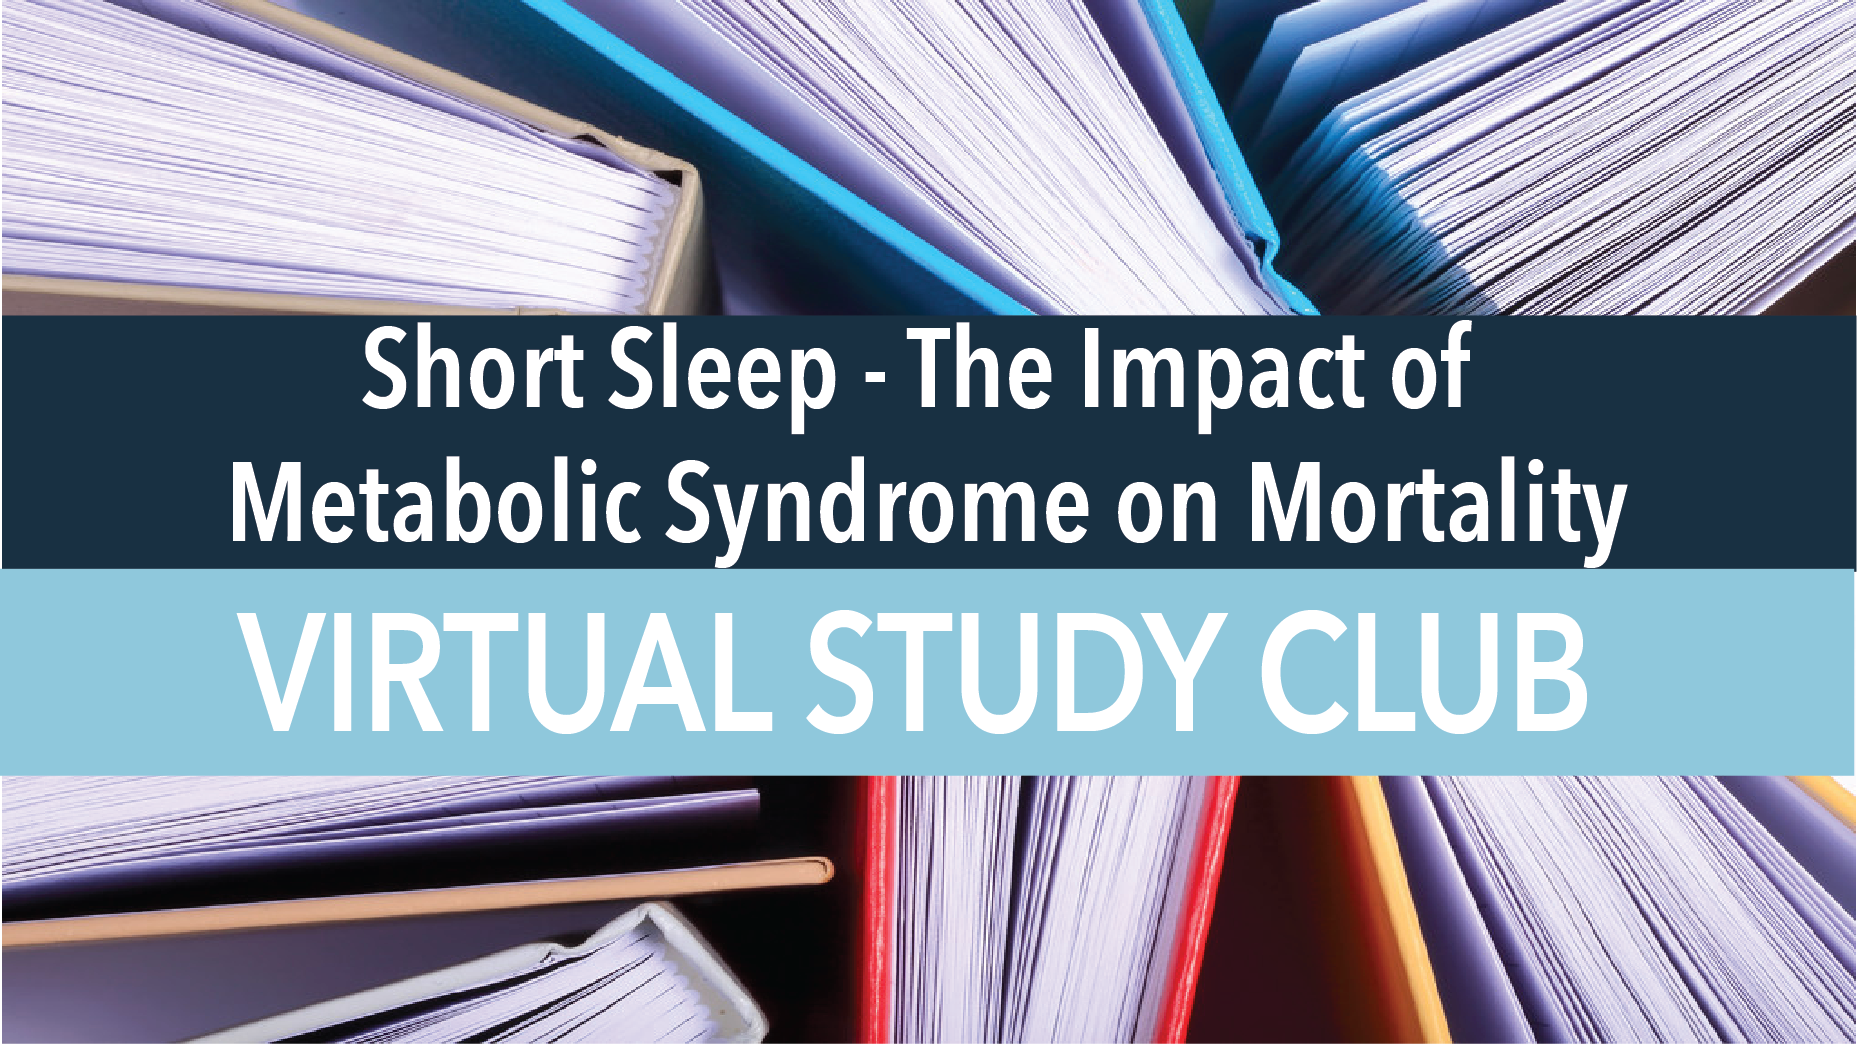 Short Sleep - The Impact of Metabolic Syndrome on Mortality.png